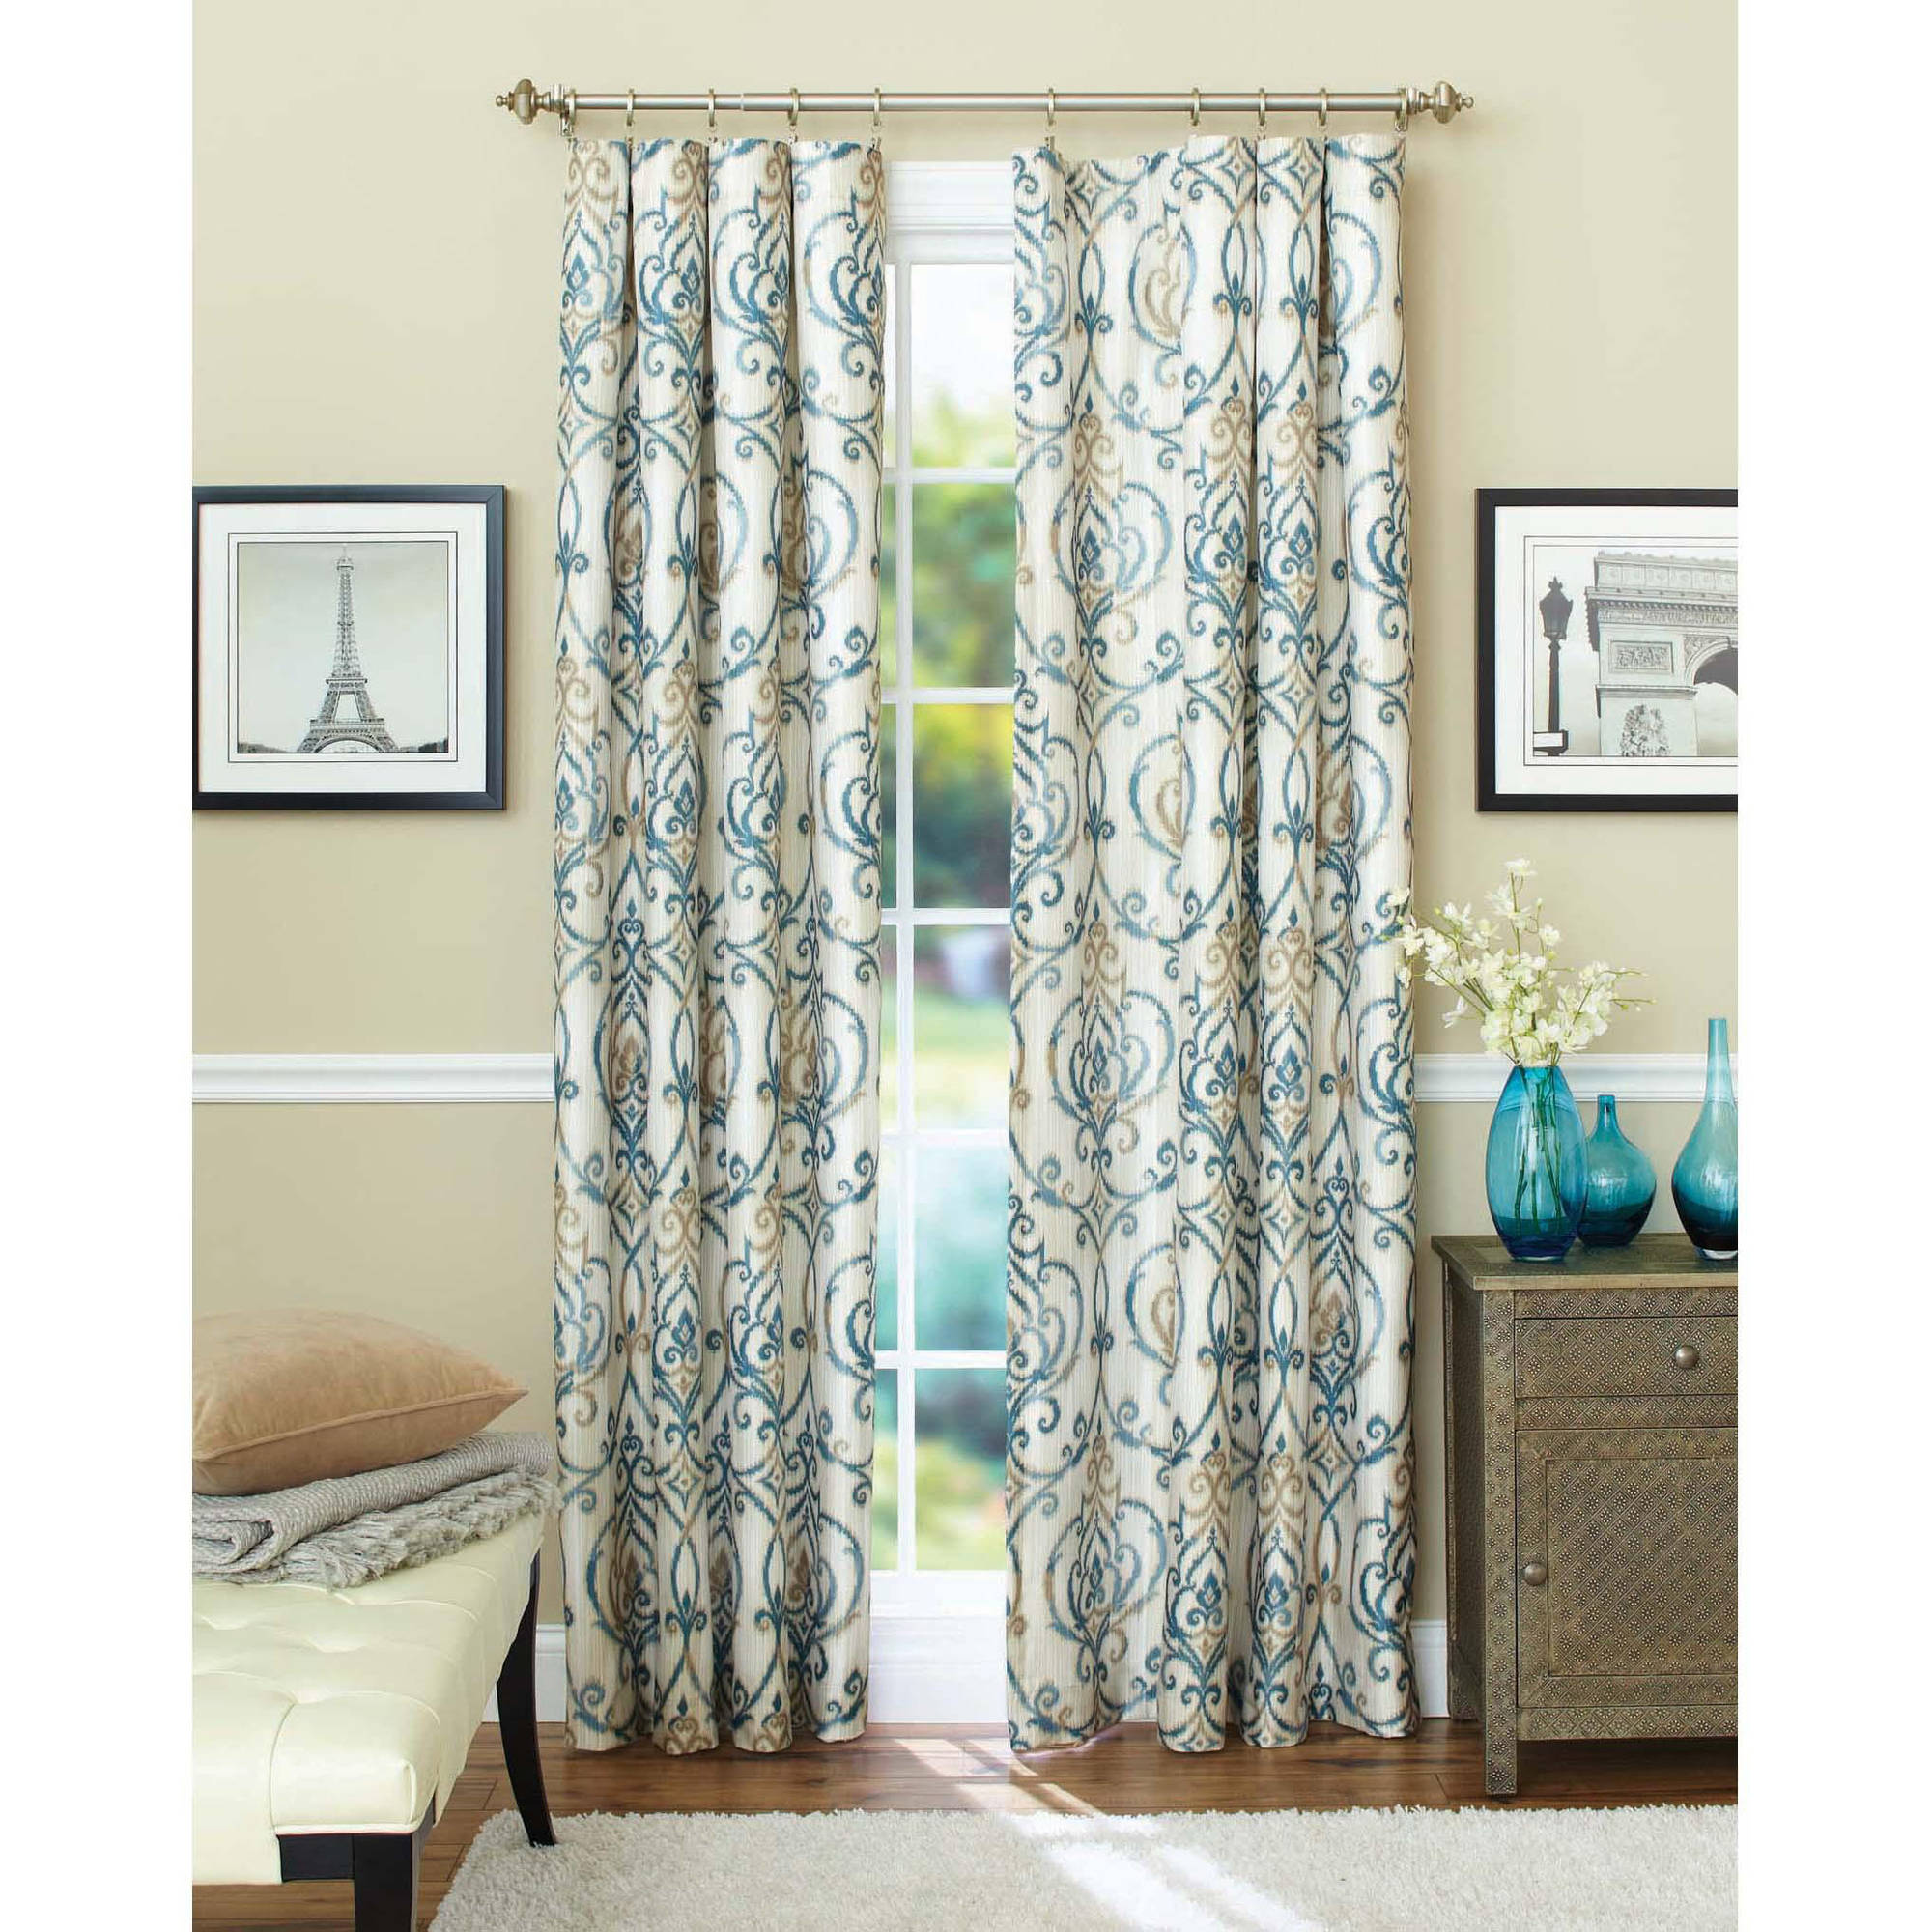 Better Homes & Gardens Ikat Scroll Curtain Panel